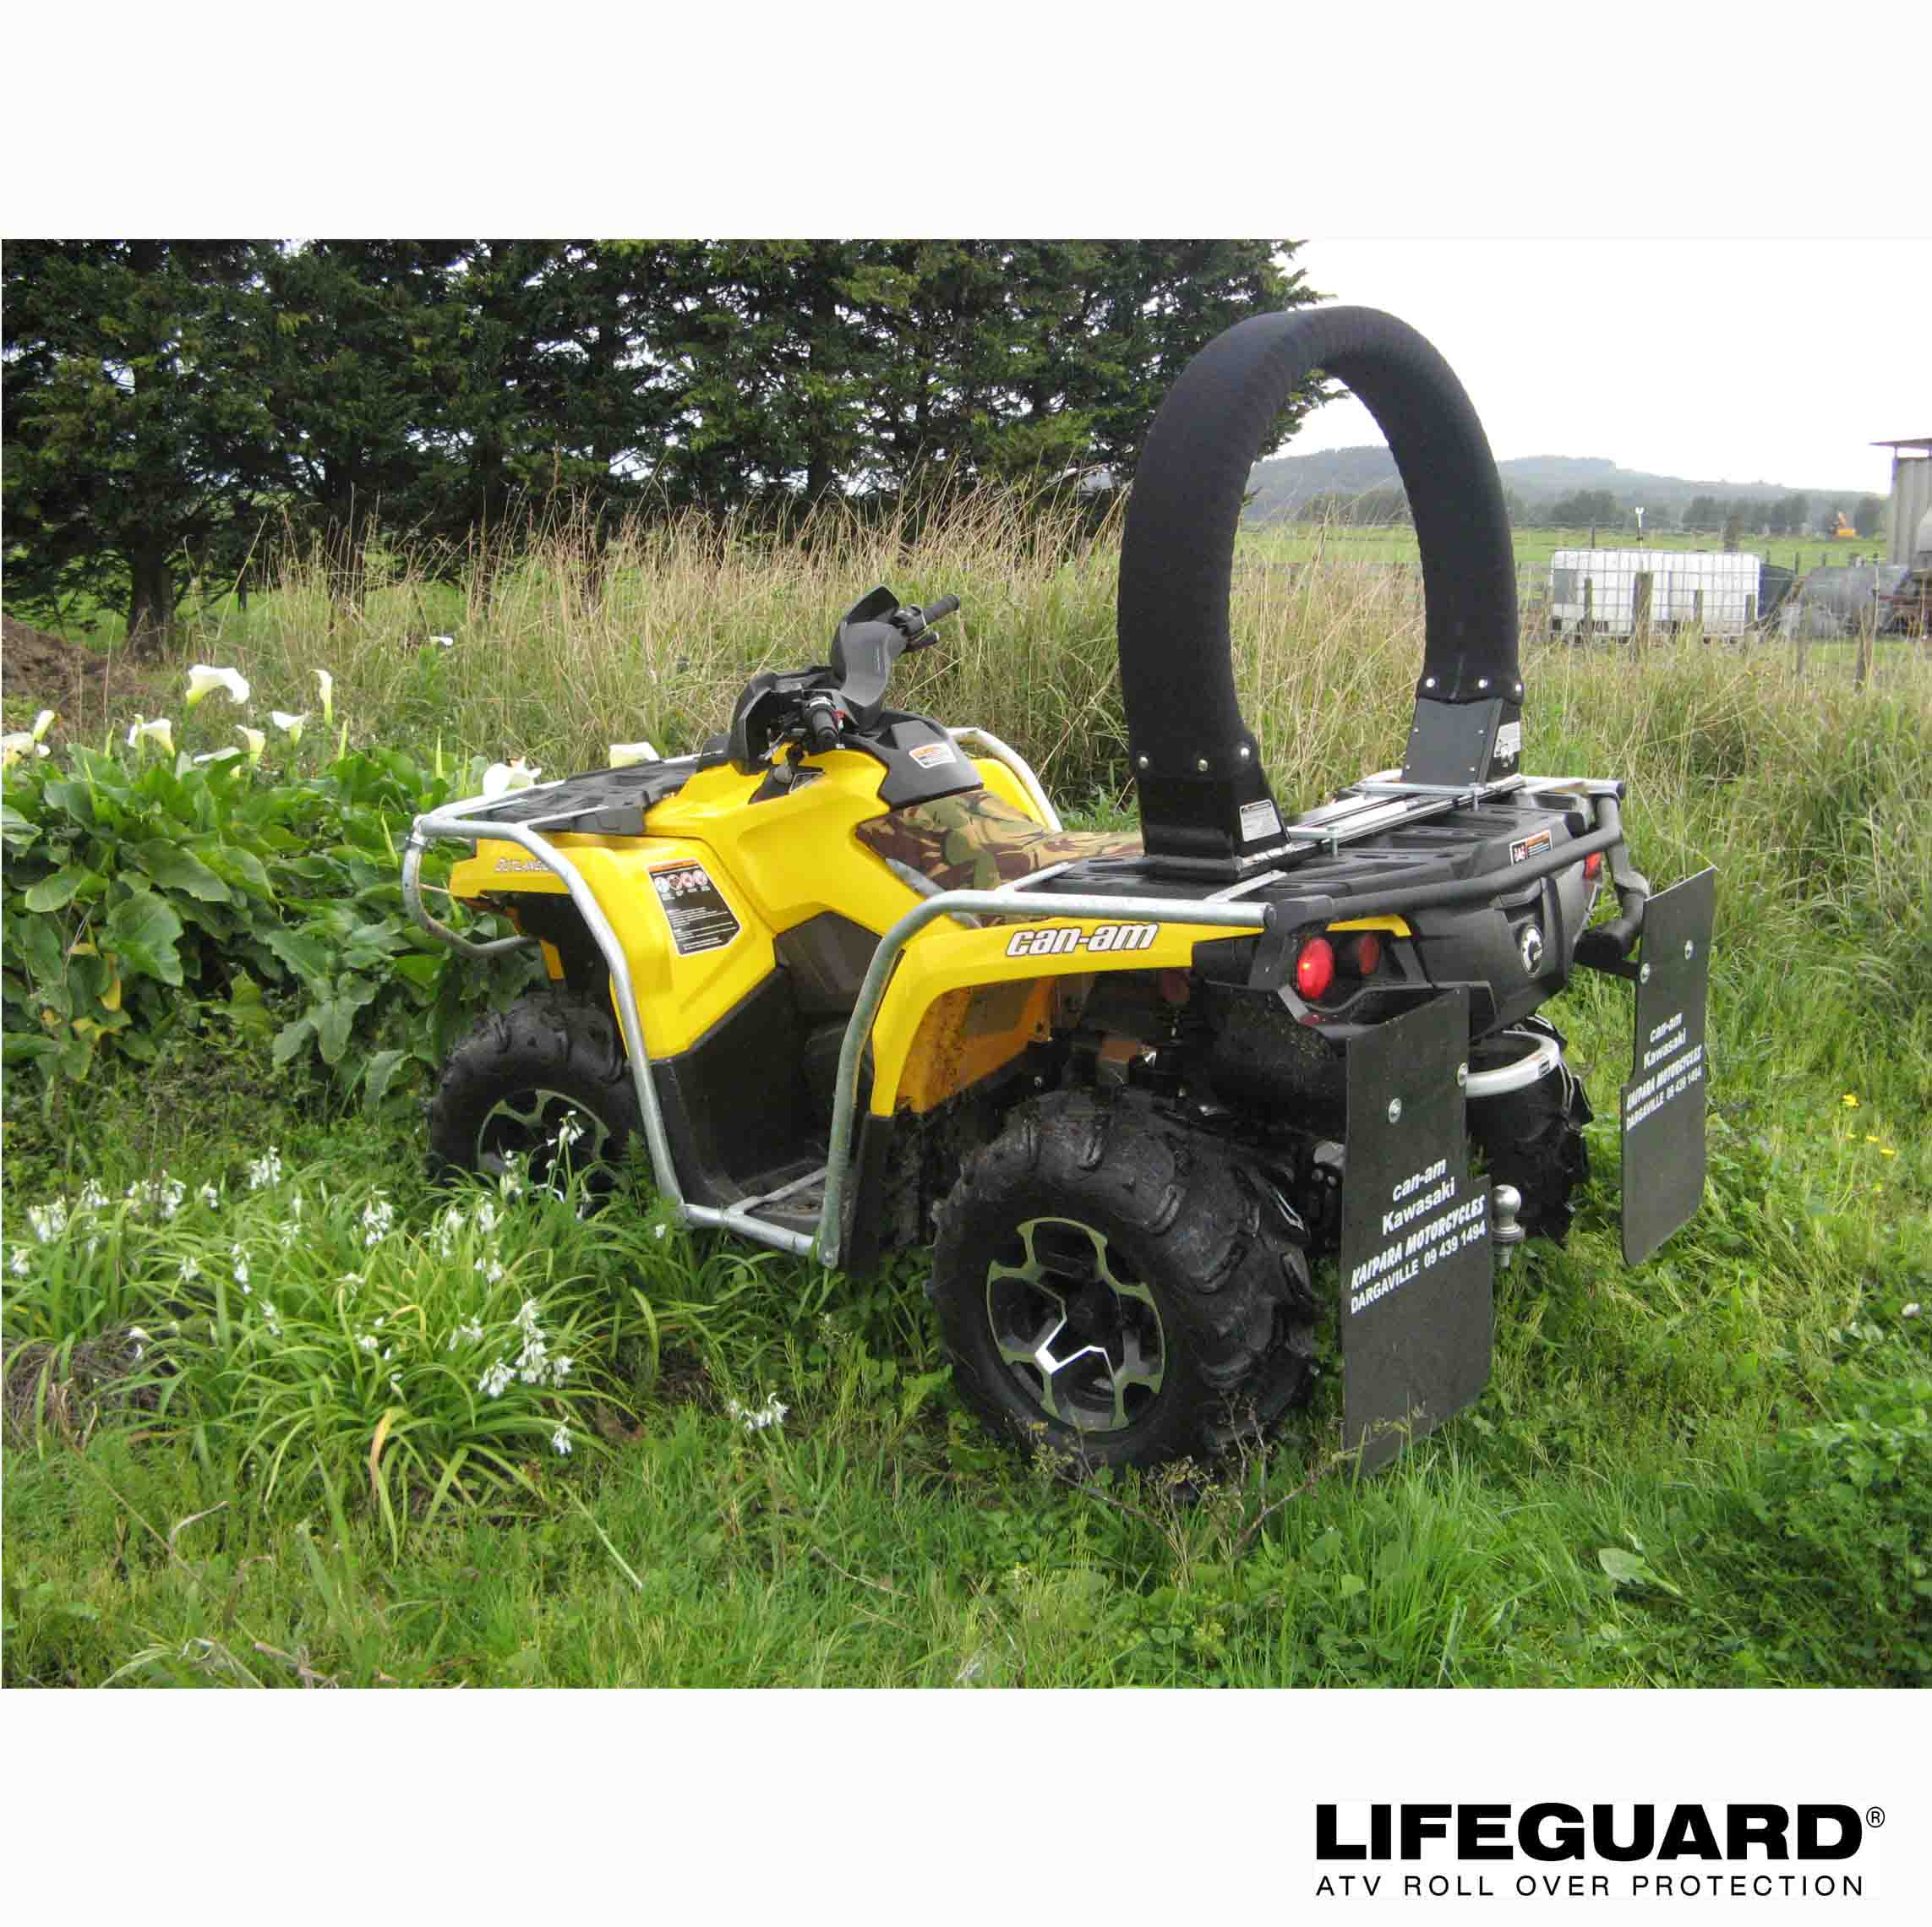 ATV Lifeguard - WorkSafe guidelines to make quads safer